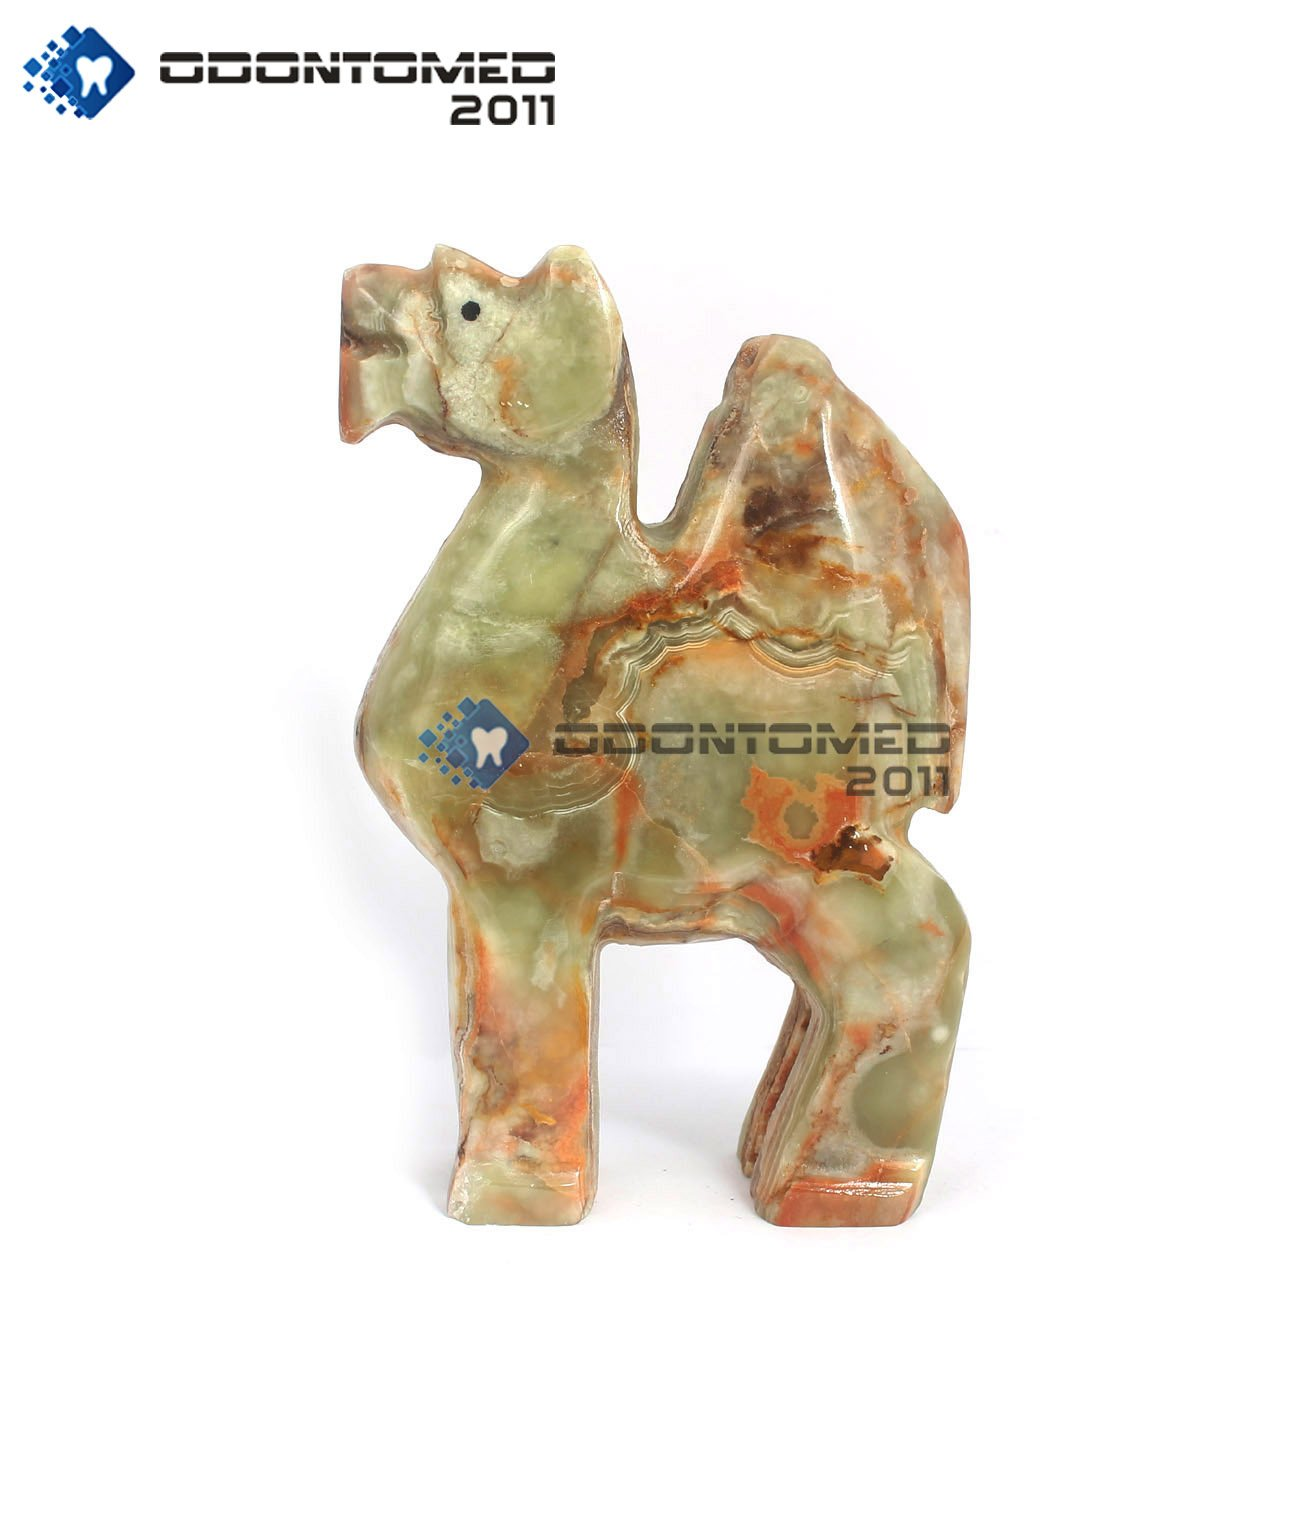 OdontoMed2011 Hand Curved Animal Shape Home Decorative Camel Style Onyx Marble